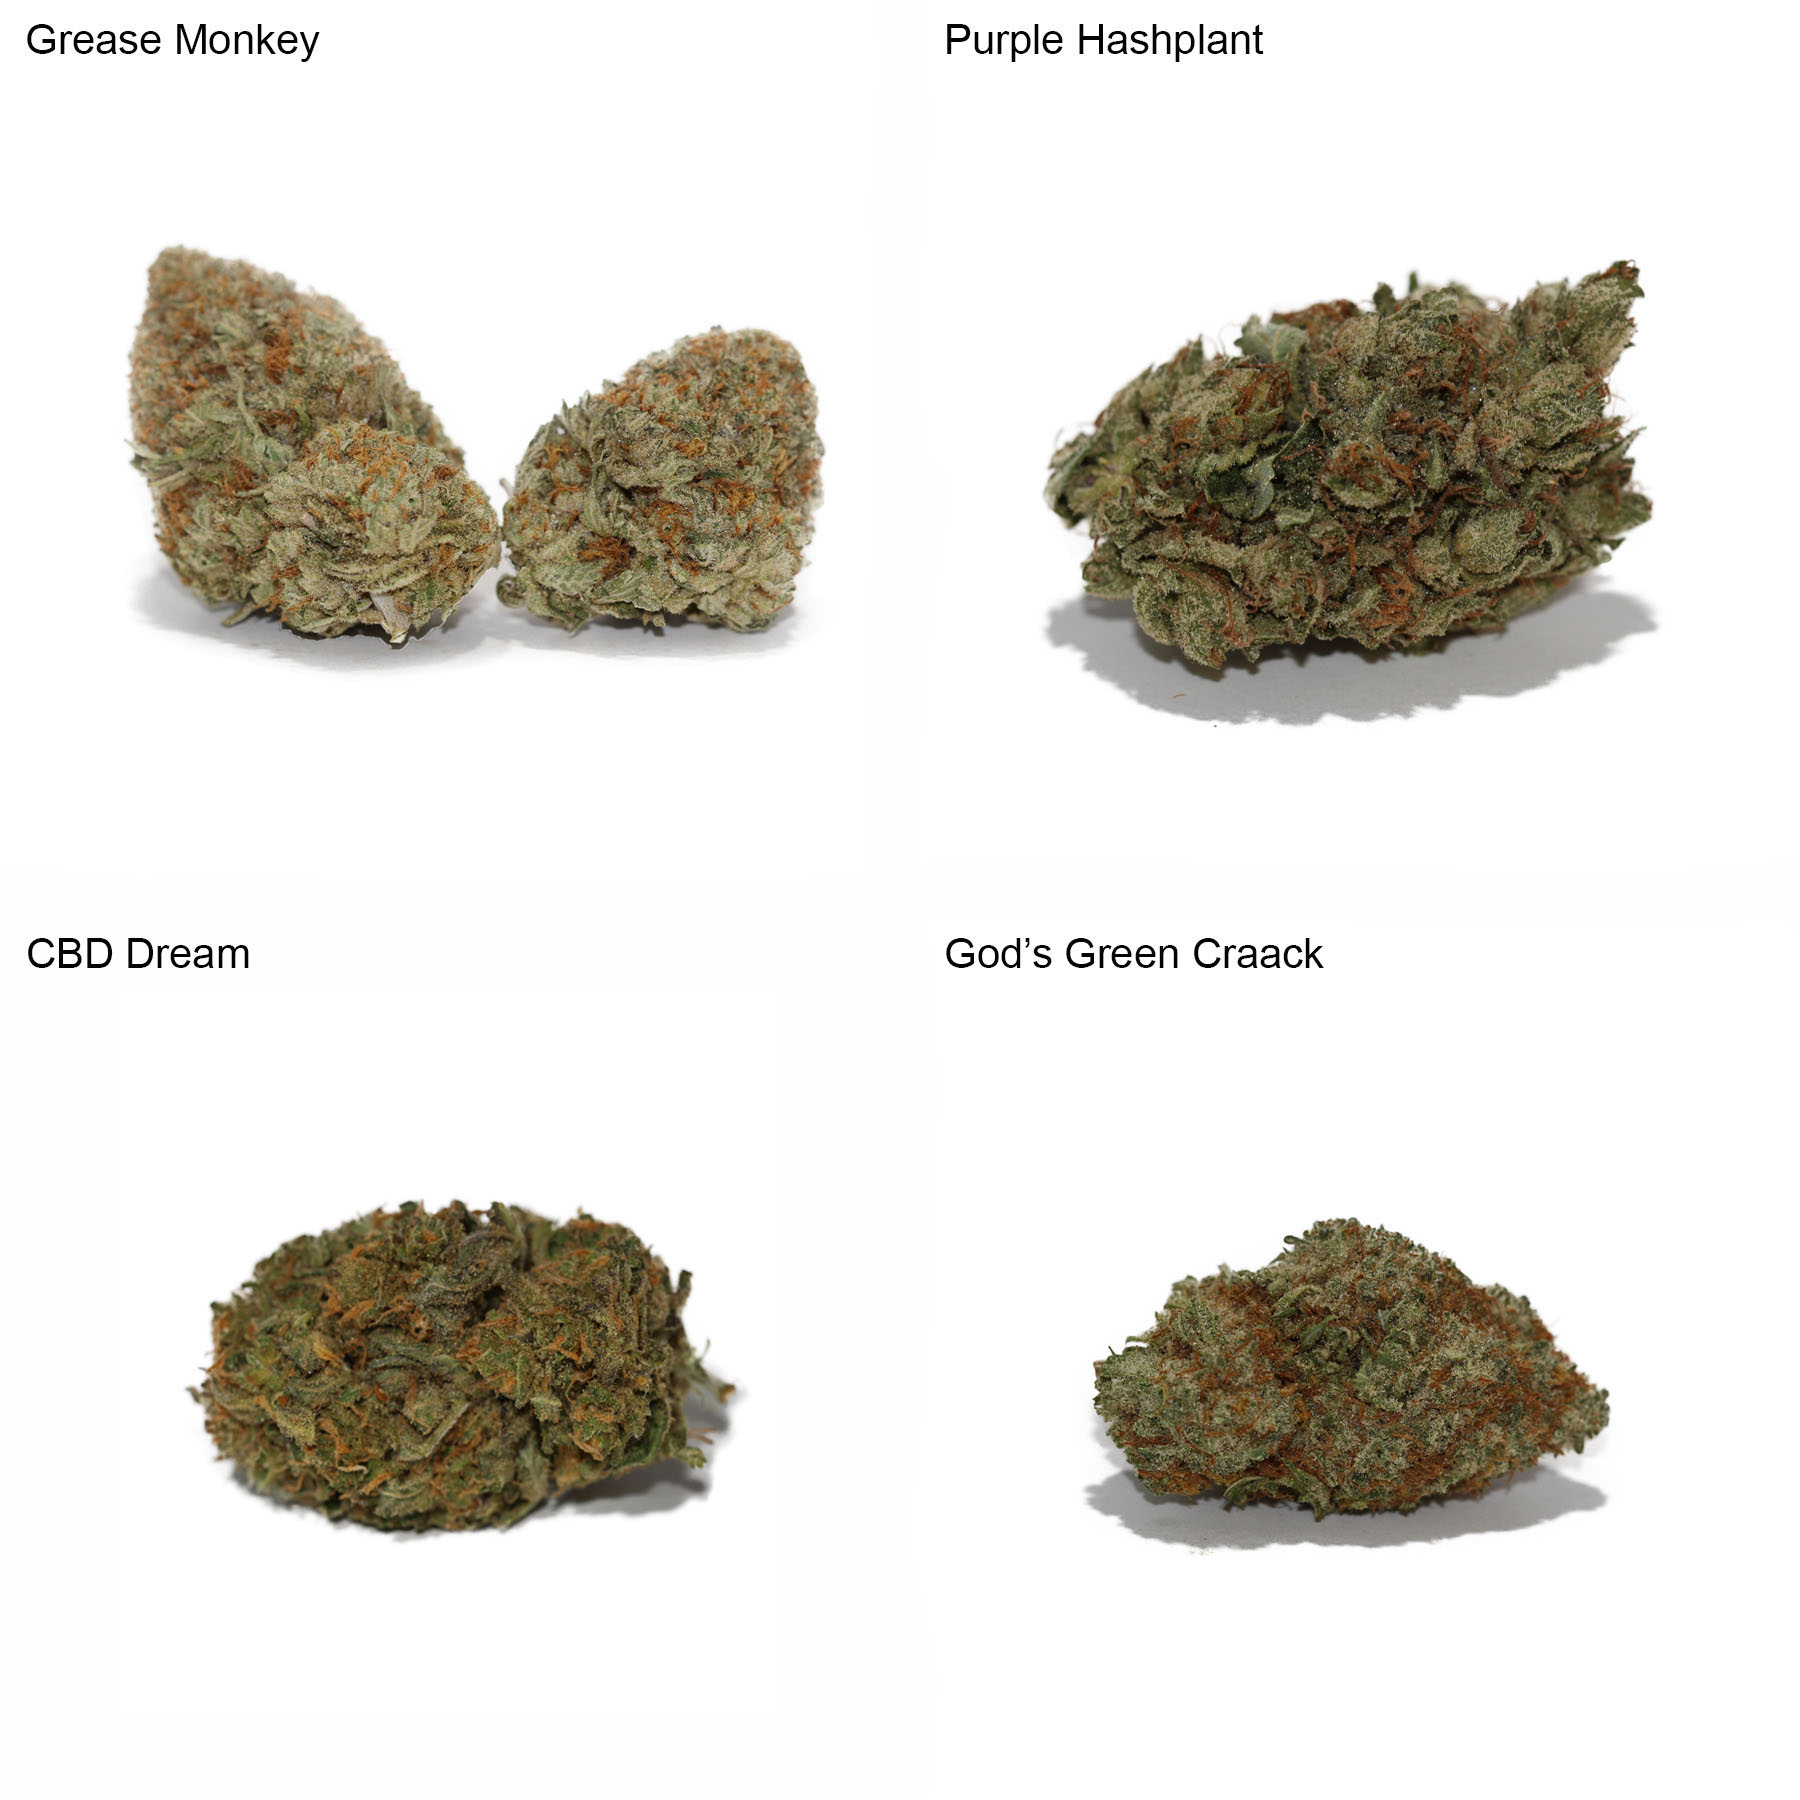 Hybrid Variety Pack by Get Kush - Image © 2018 Get Kush. All Rights Reserved.